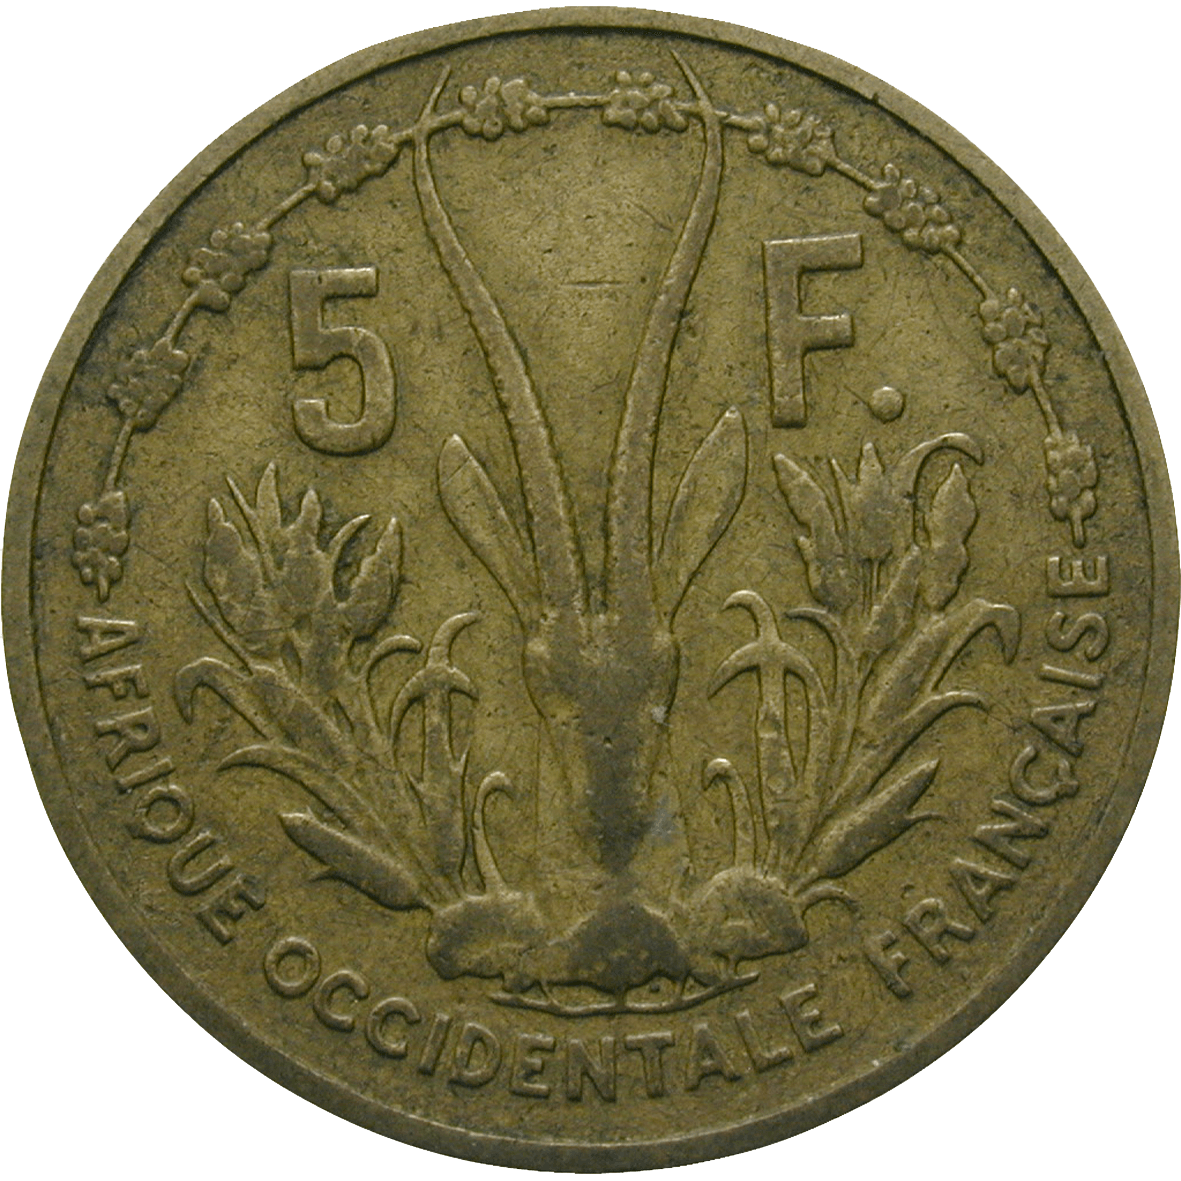 Republic of France for French West Africa, 5 Francs 1956 (reverse)